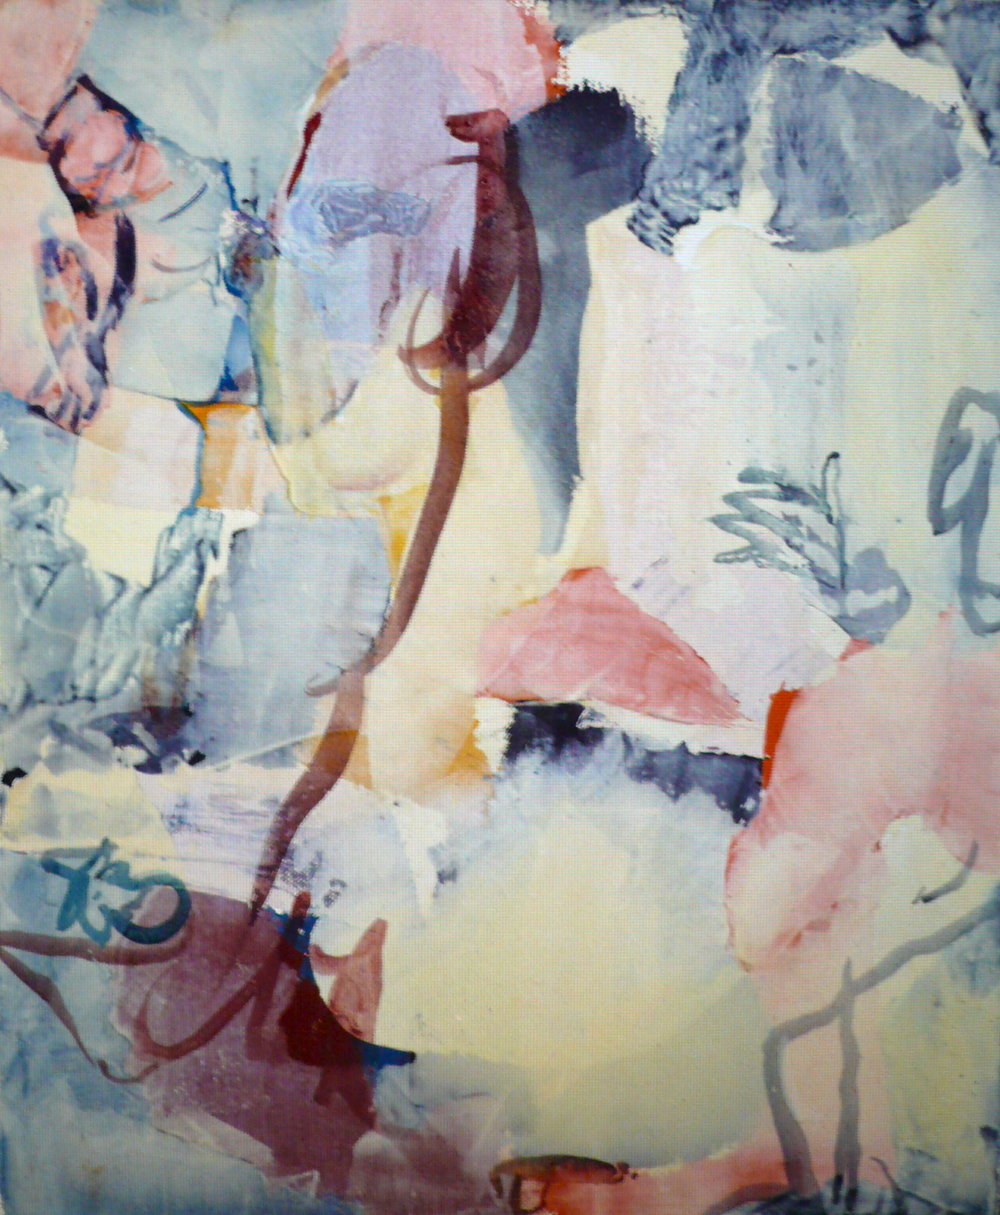 117) Retiro II 1992 oil:wax on linen 35.5x45.8 cm.JPG